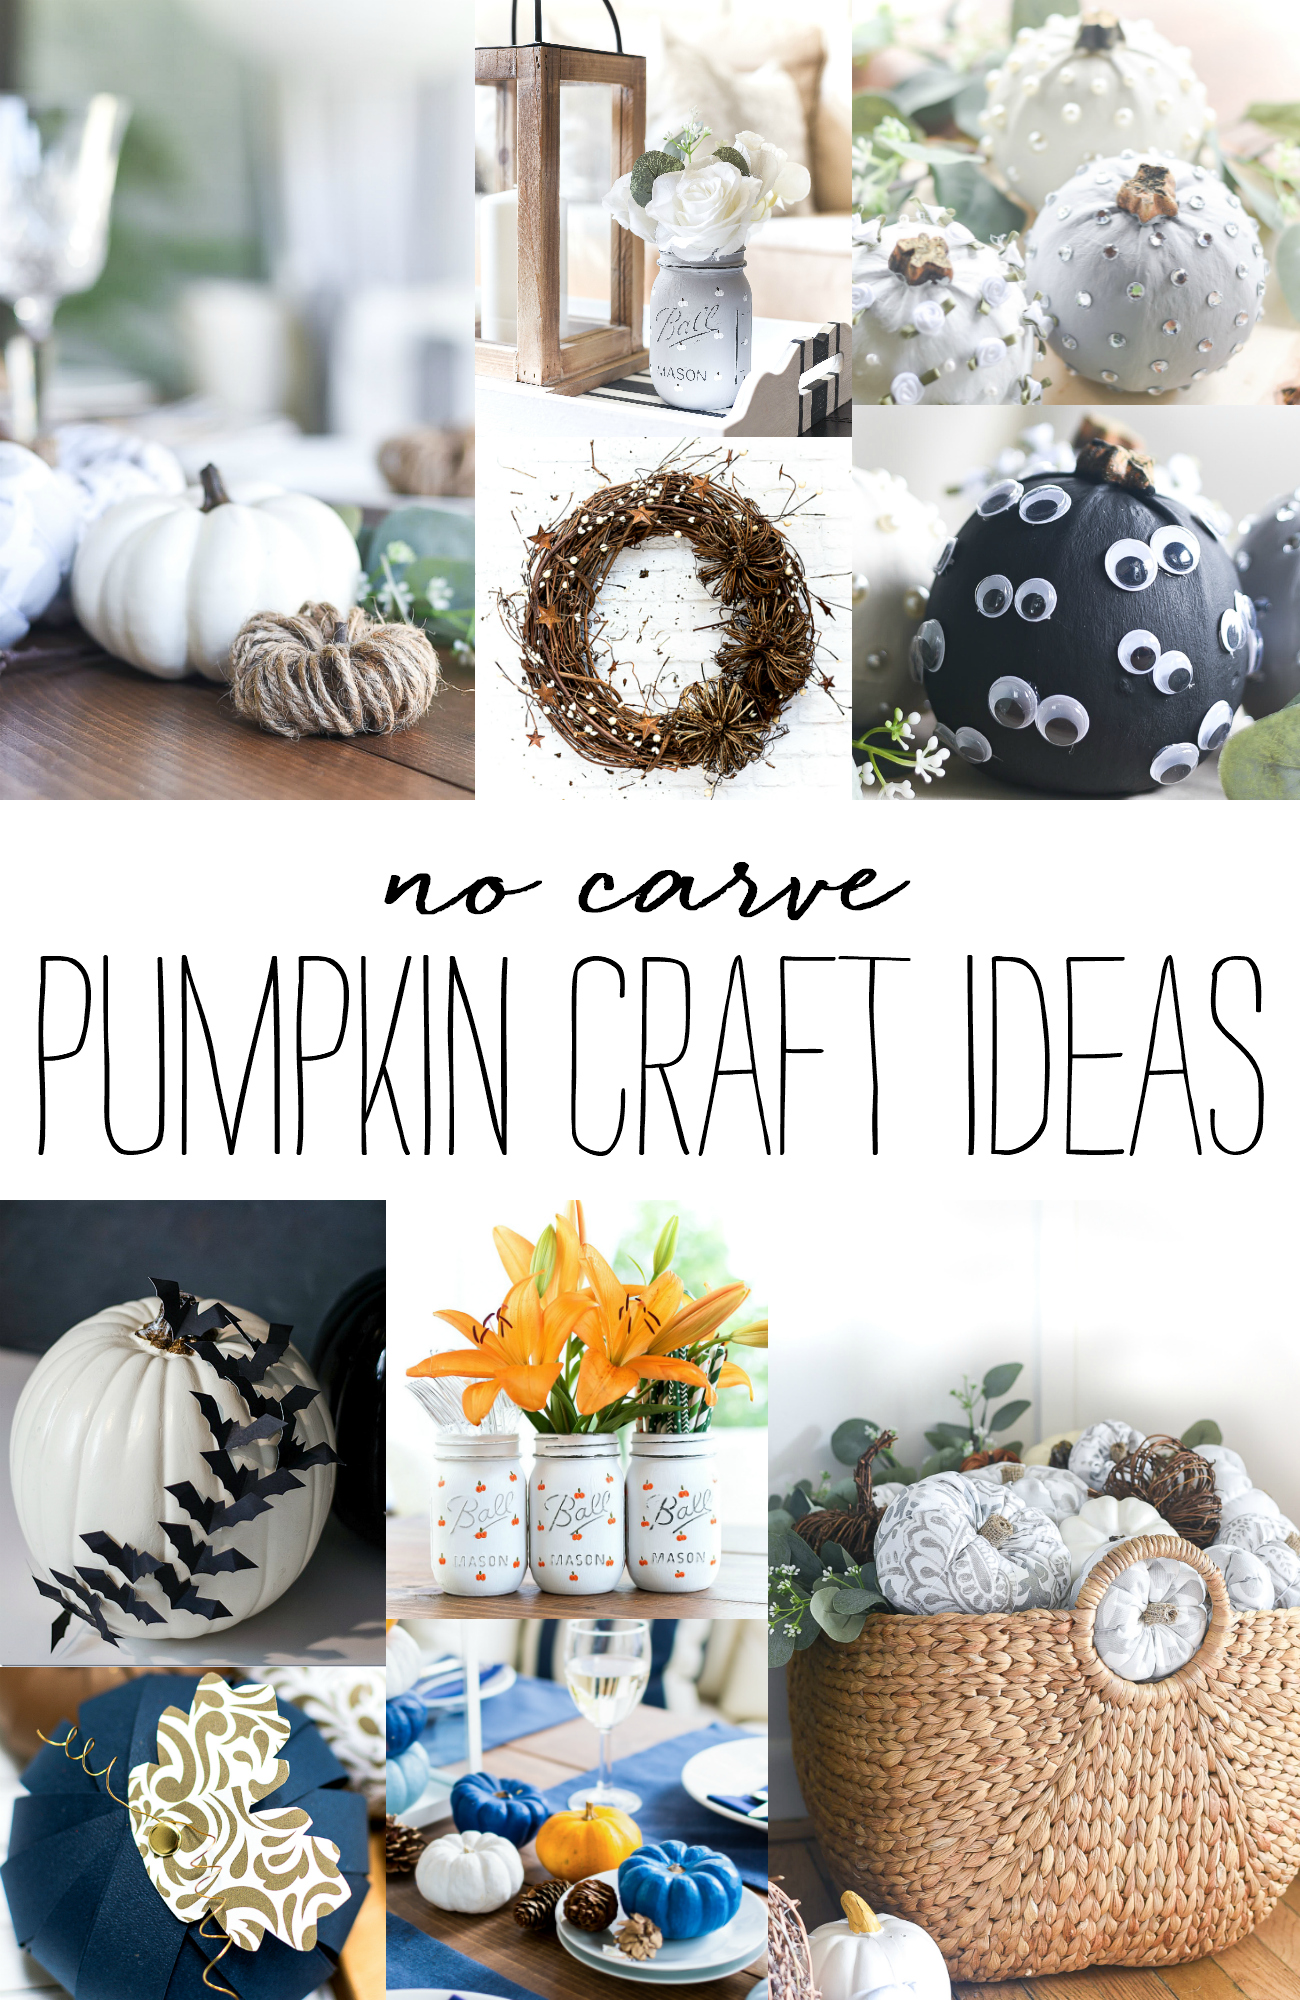 No Carve Pumpkin Craft Ideas - Halloween Crafts - Halloween Crafts for Kids - Fall Craft Ideas with Pumpkins - Thanksgiving Table Decor Ideas with Pumpkins